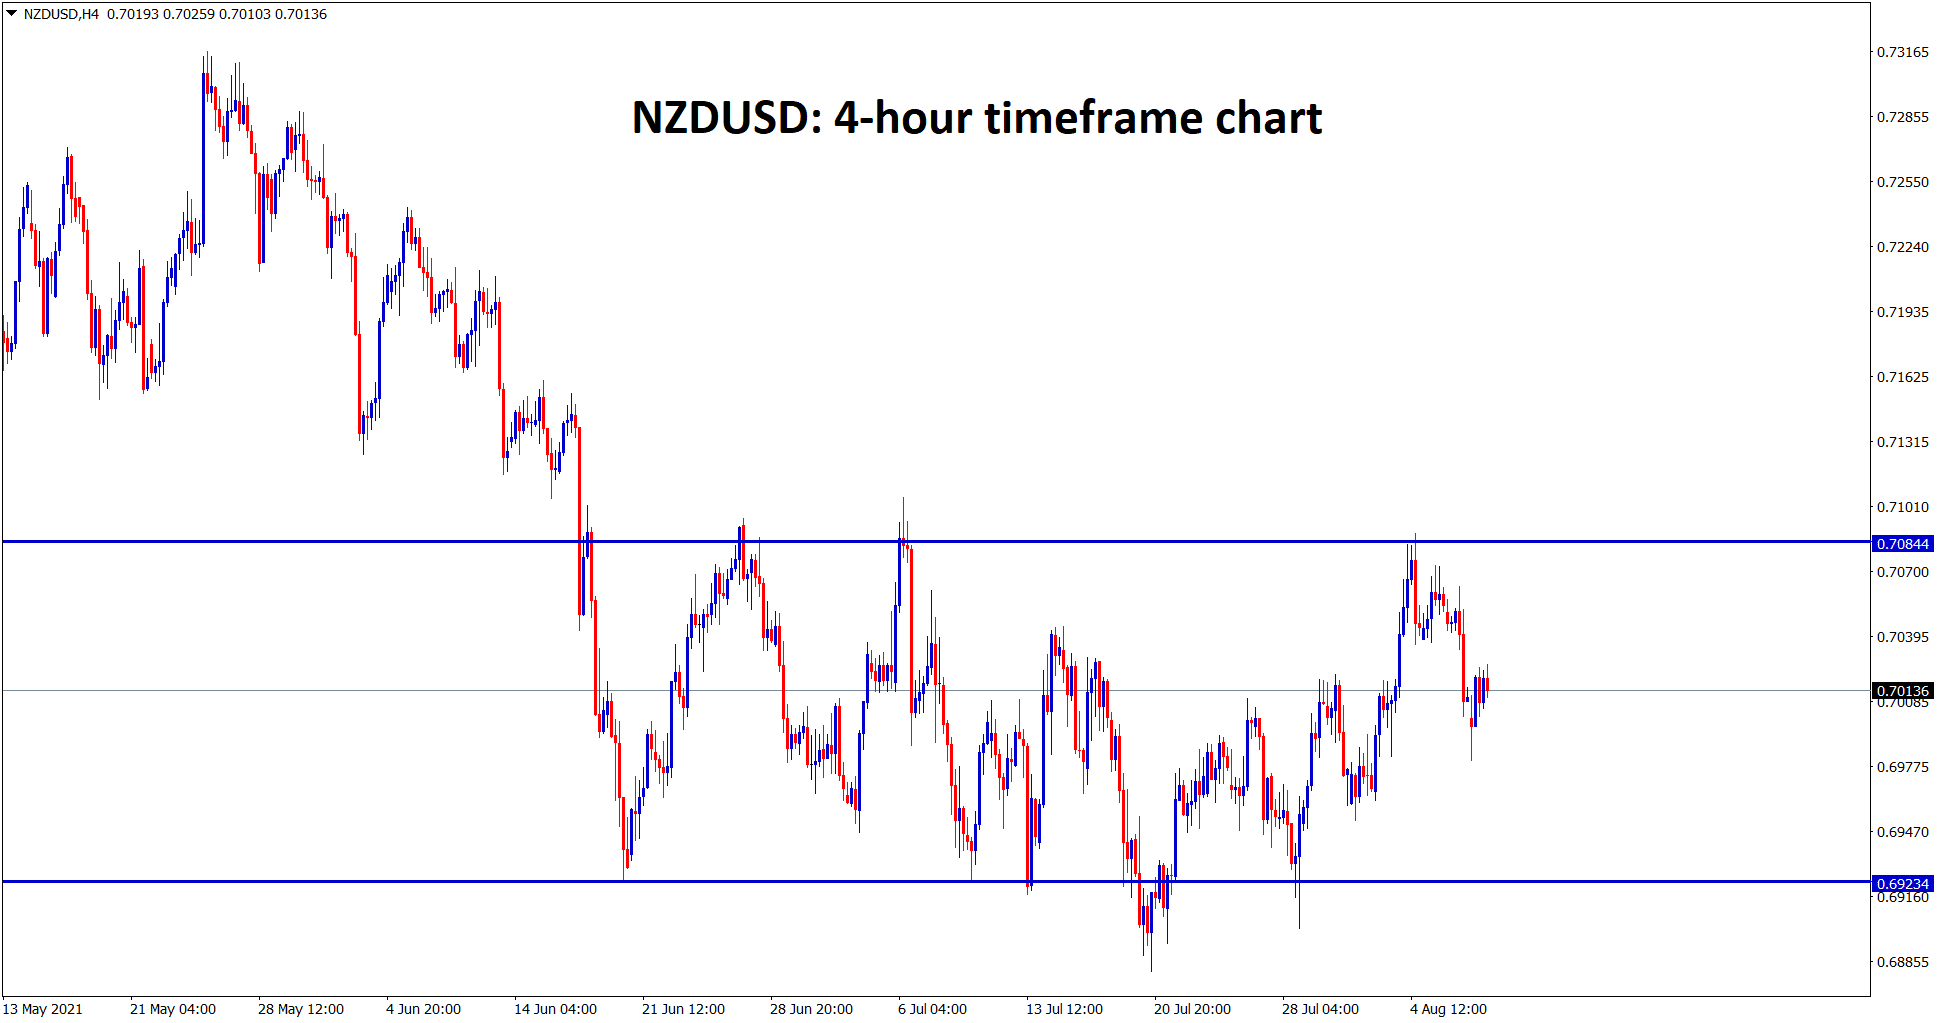 NZDUSD is consolidating between these support and resistance zone